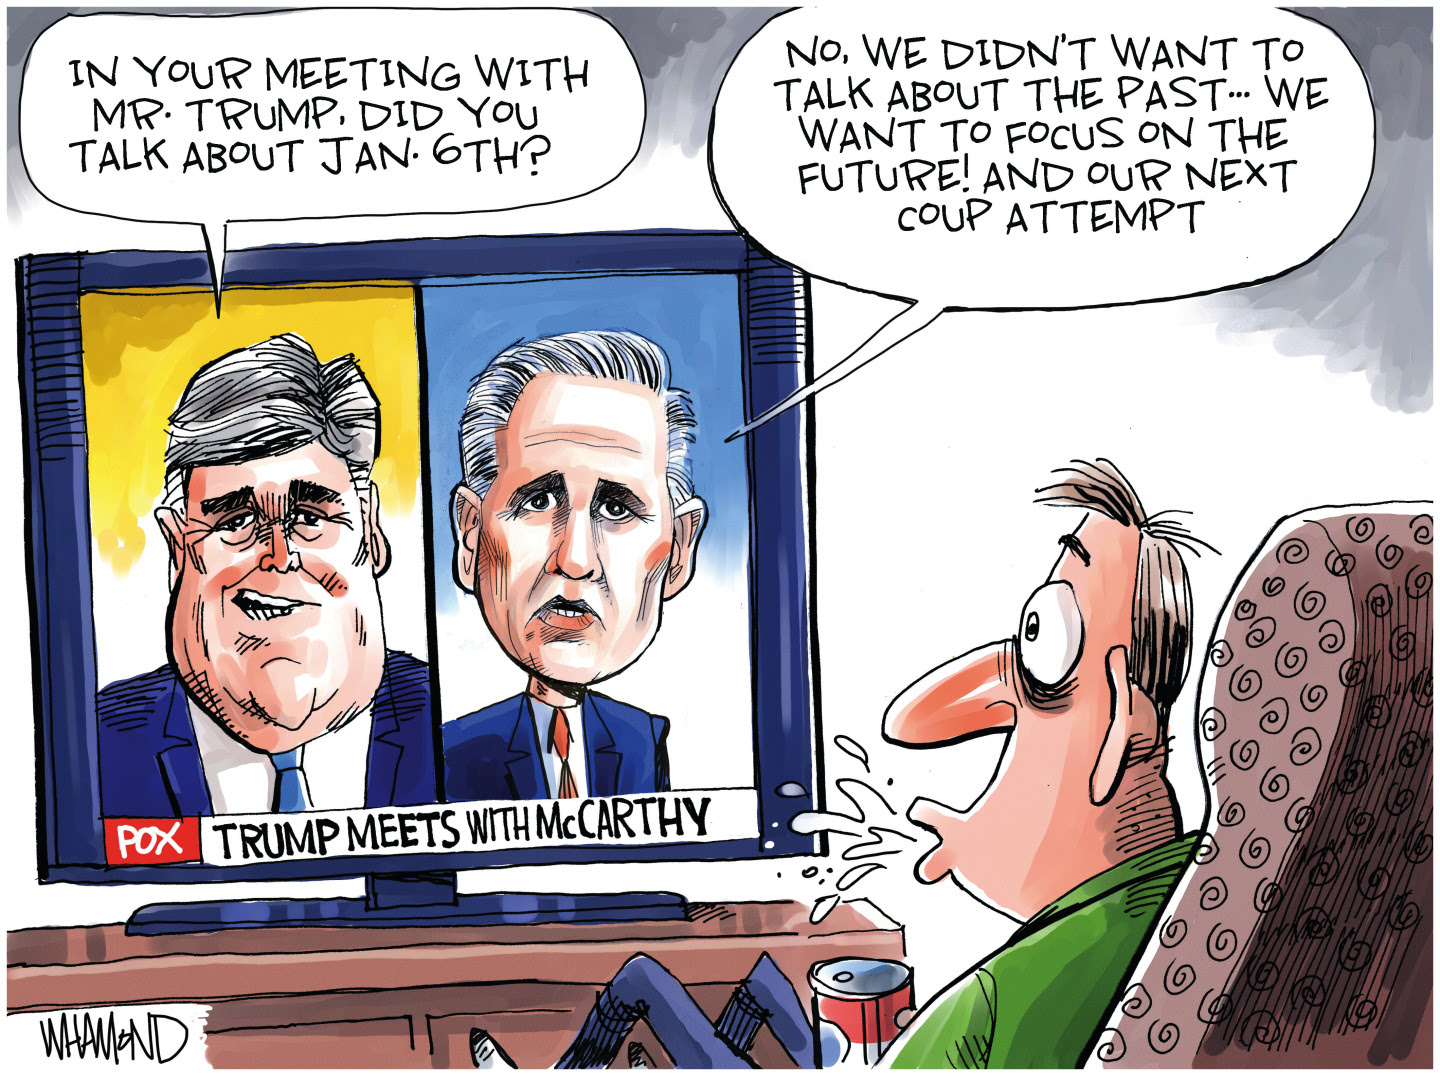 Kevin McCarthy fights Jan 6th investigation